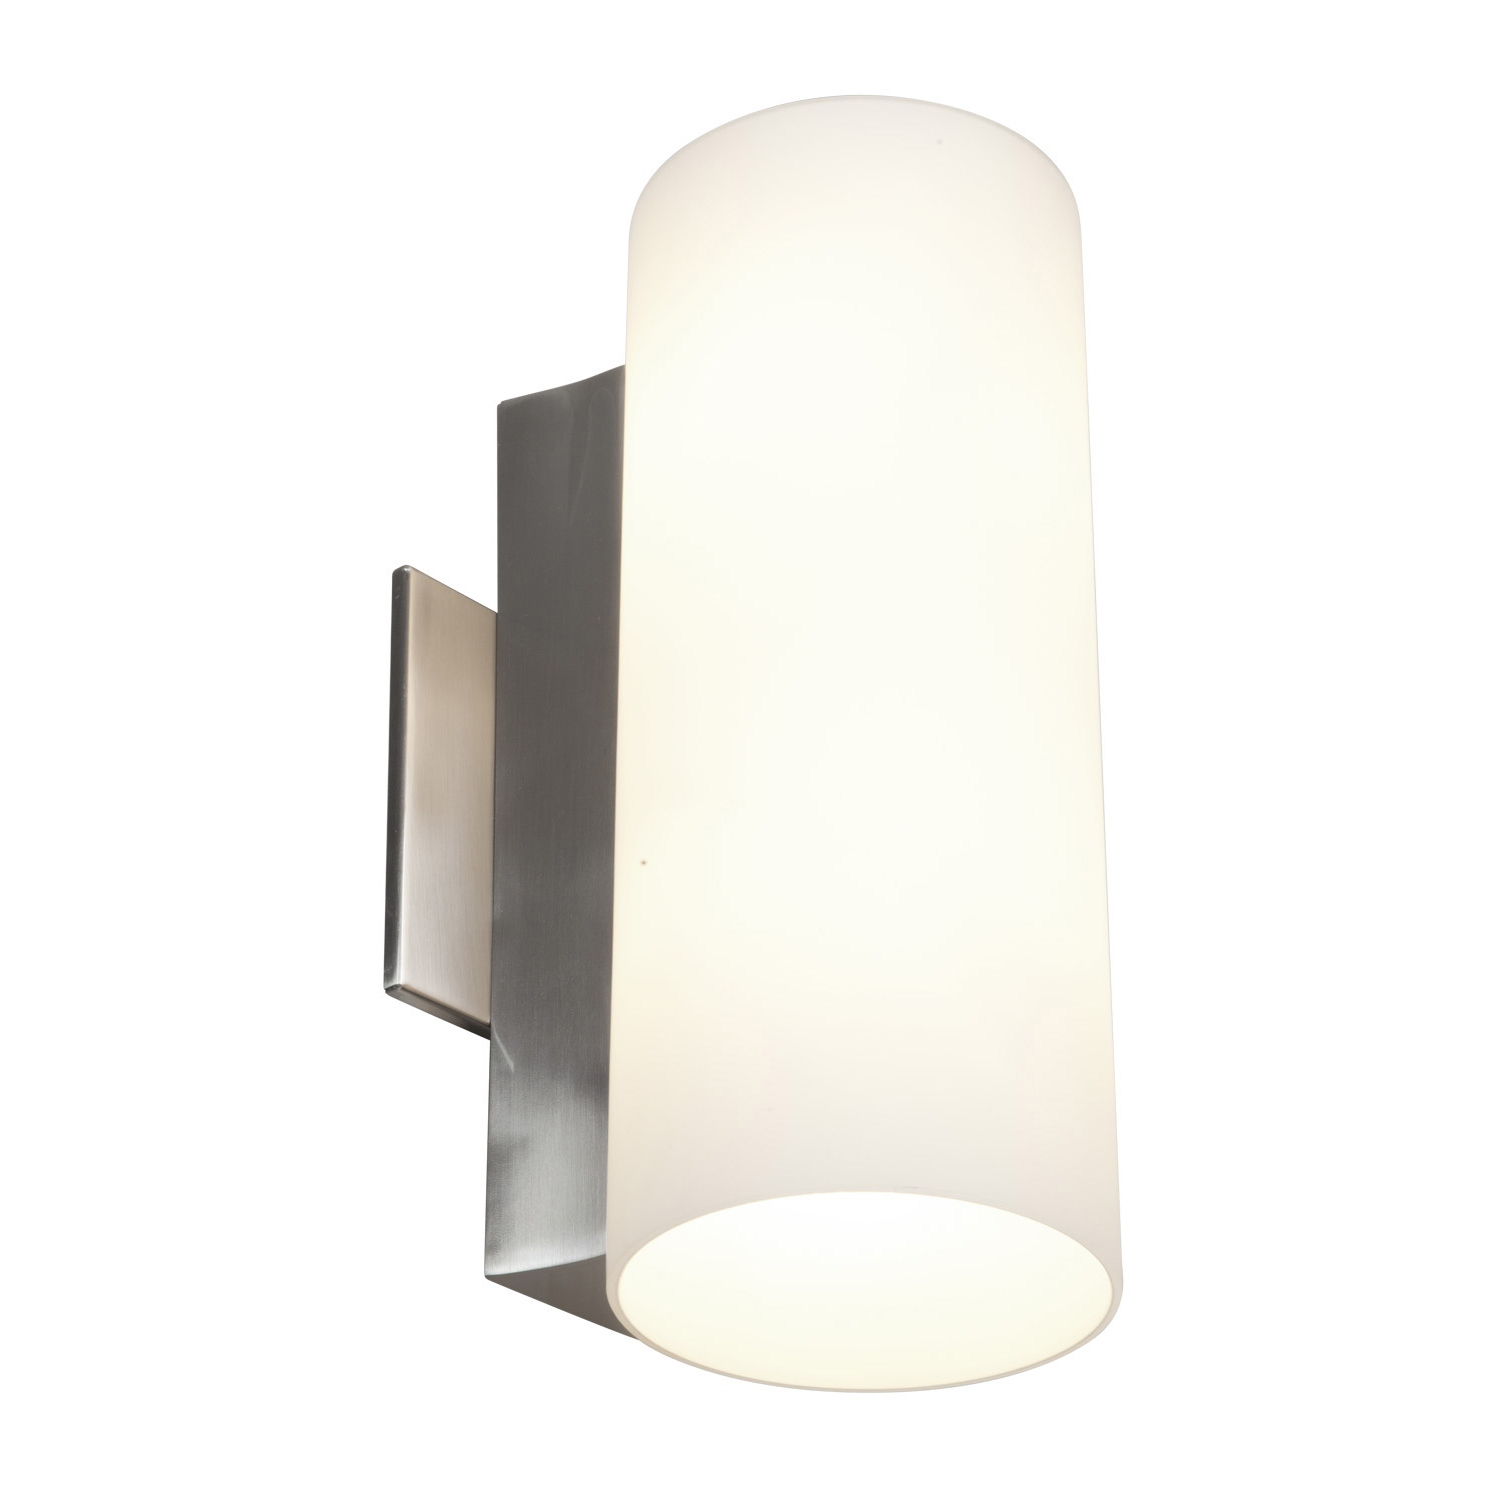 plug in sconce wall light photo - 10